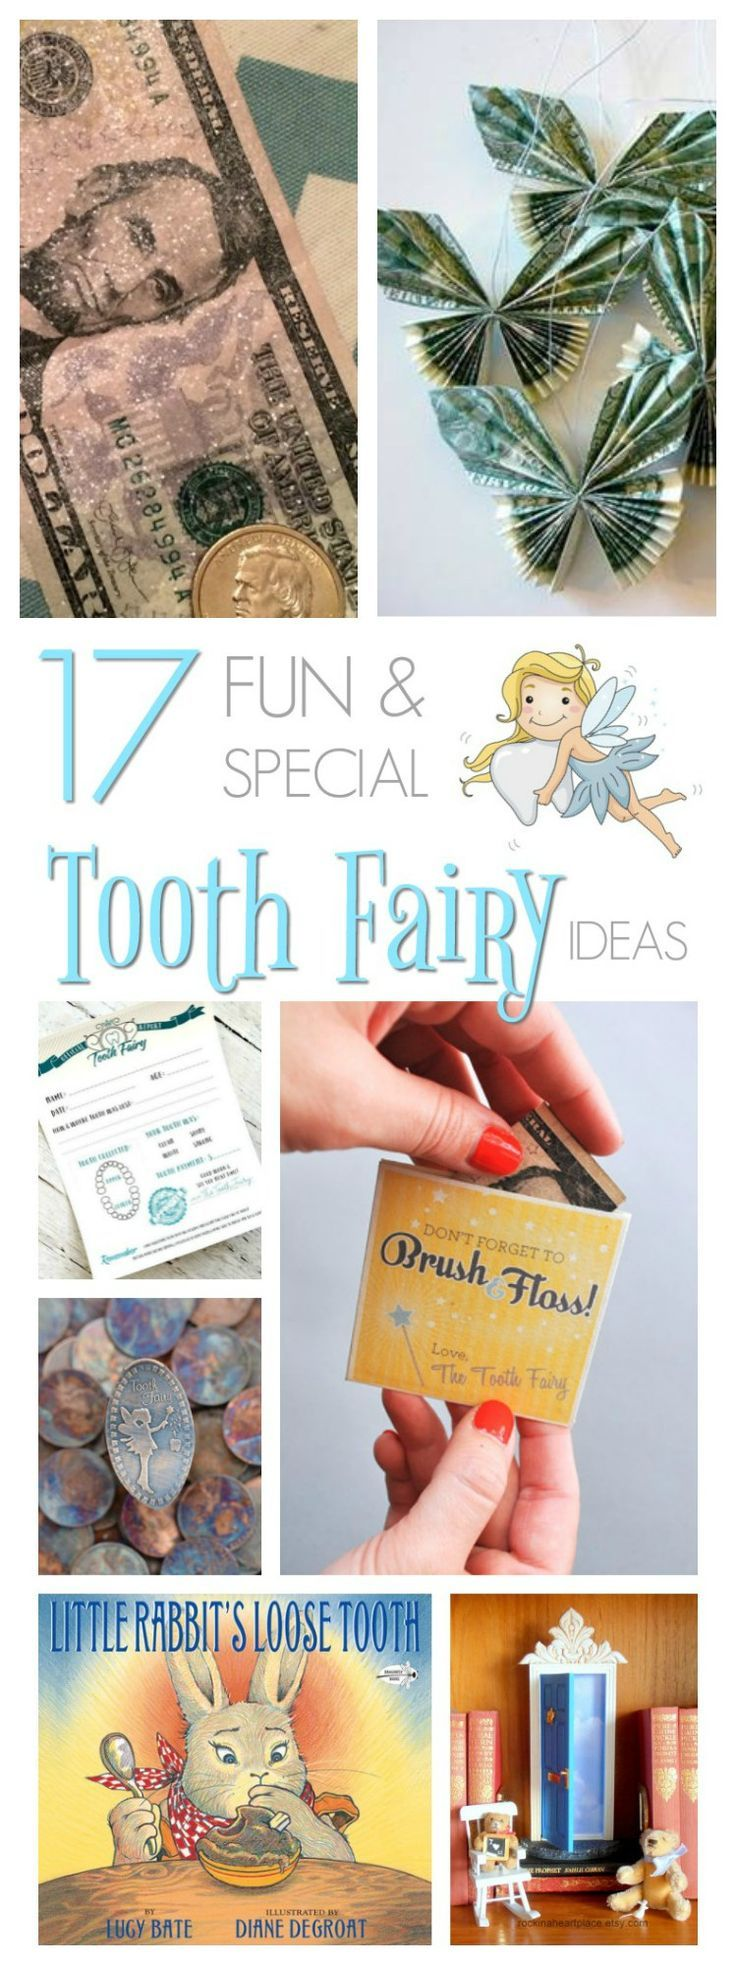 Your child has a loose tooth and they are so excited. Now make the visit from the Tooth Fairy extra special with these fun tooth fairy ideas.